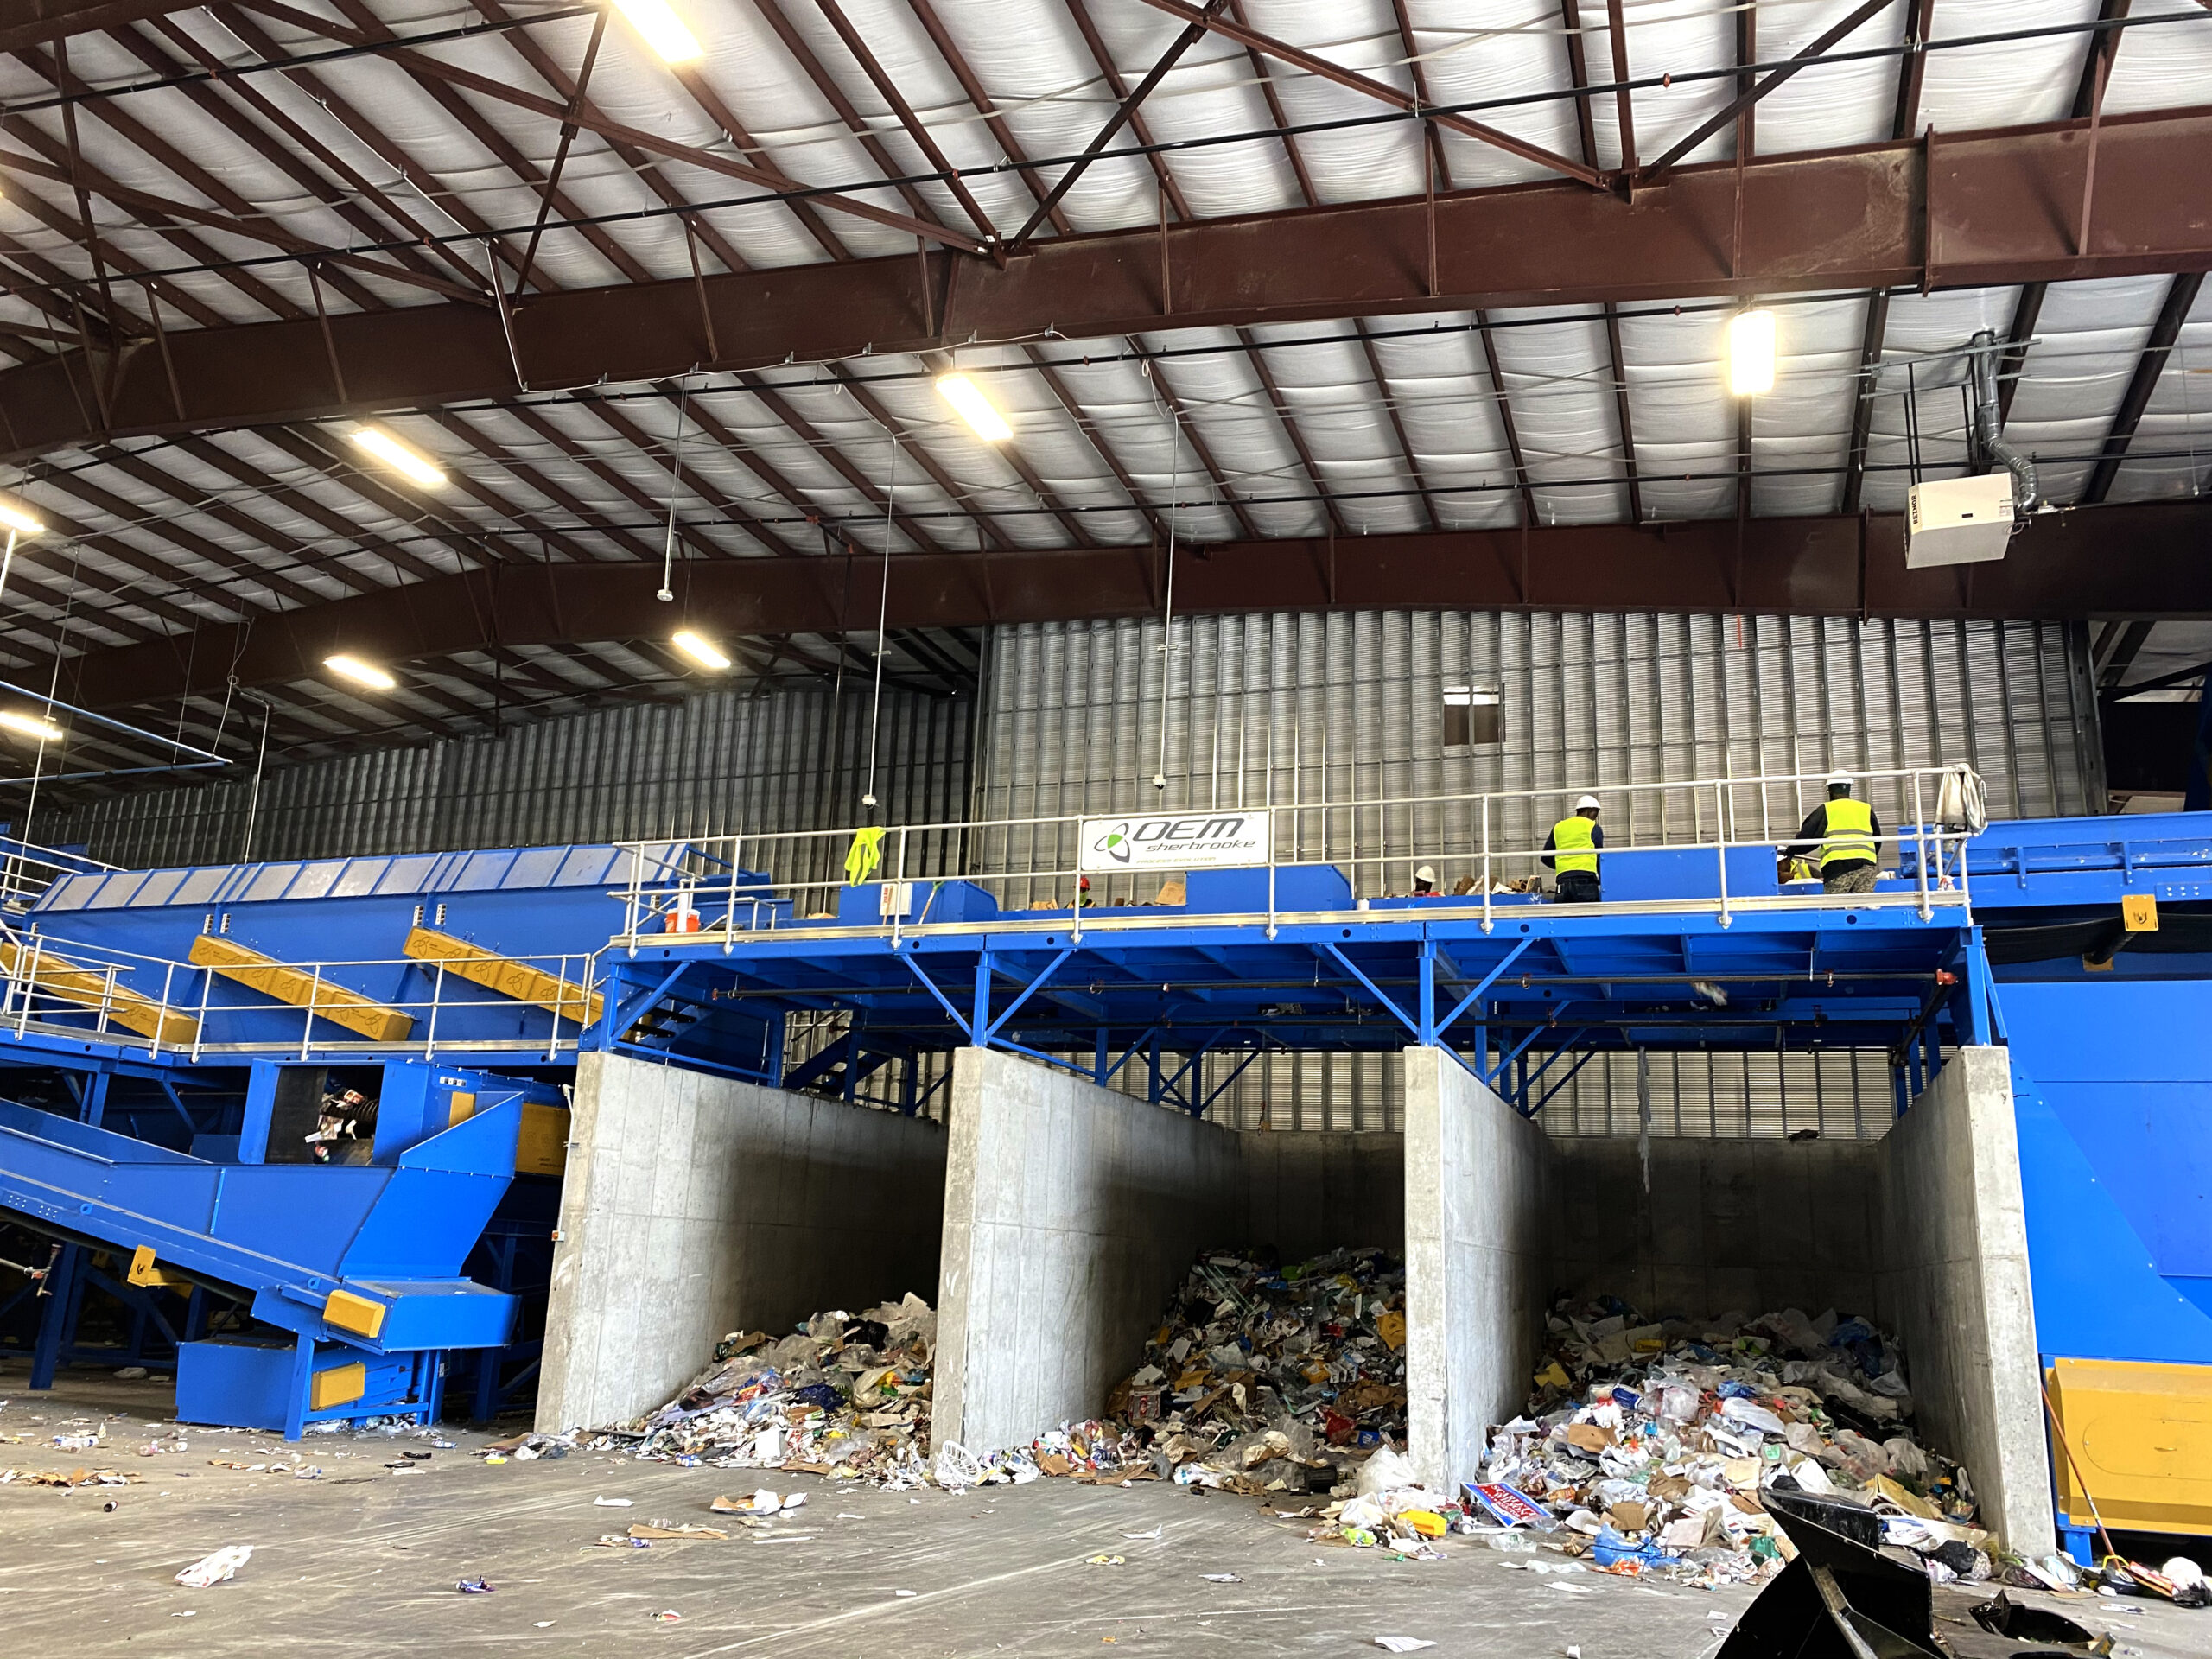 blue interior in a recycling facility